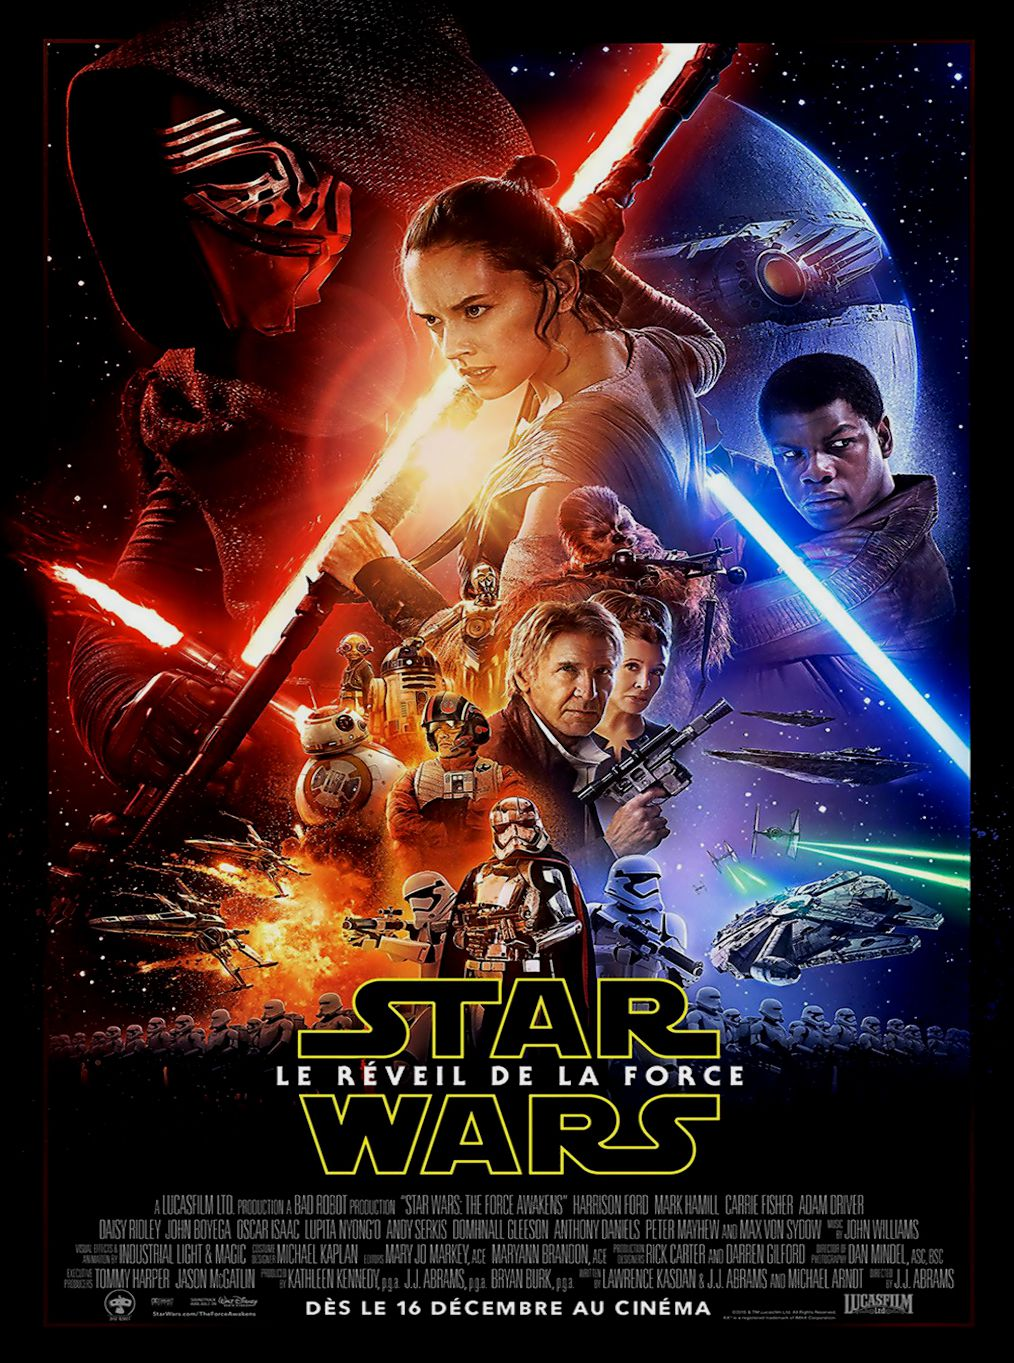 Affiche Poster star wars réveil force awaken disney lucasfilm